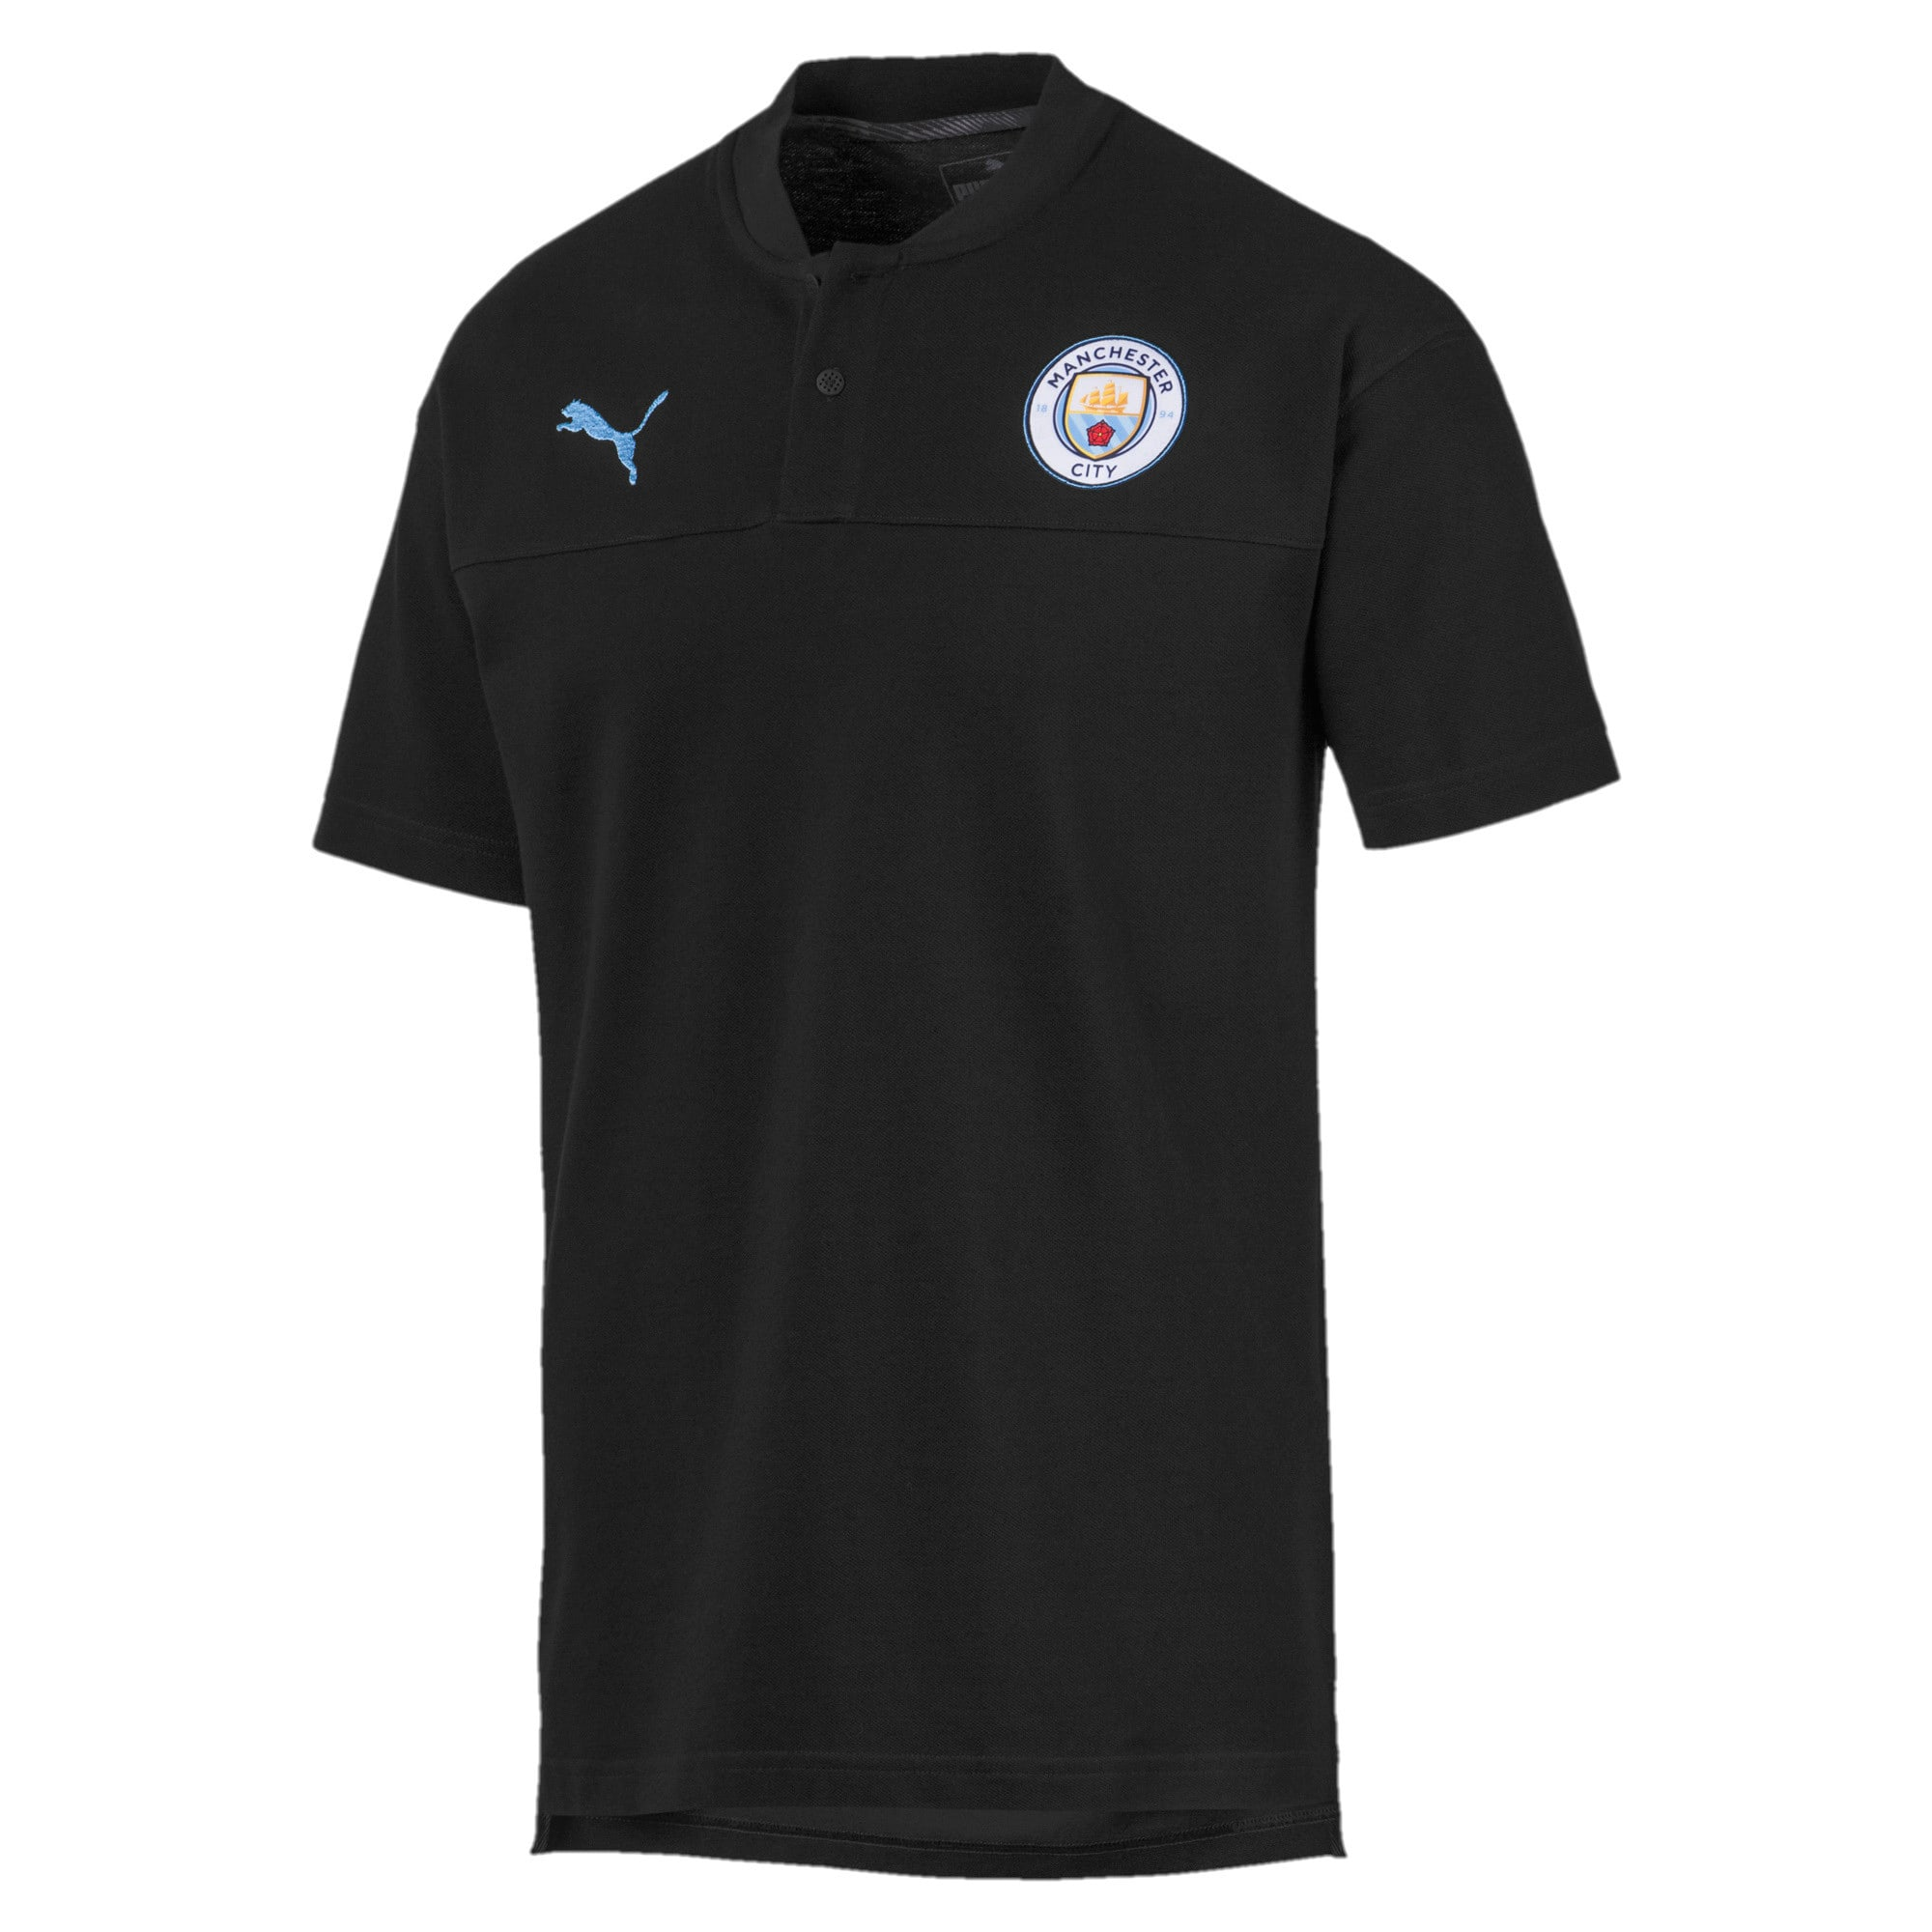 Thumbnail 1 of Man City Casuals Men's Polo Shirt, Puma Black-Team Light Blue, medium